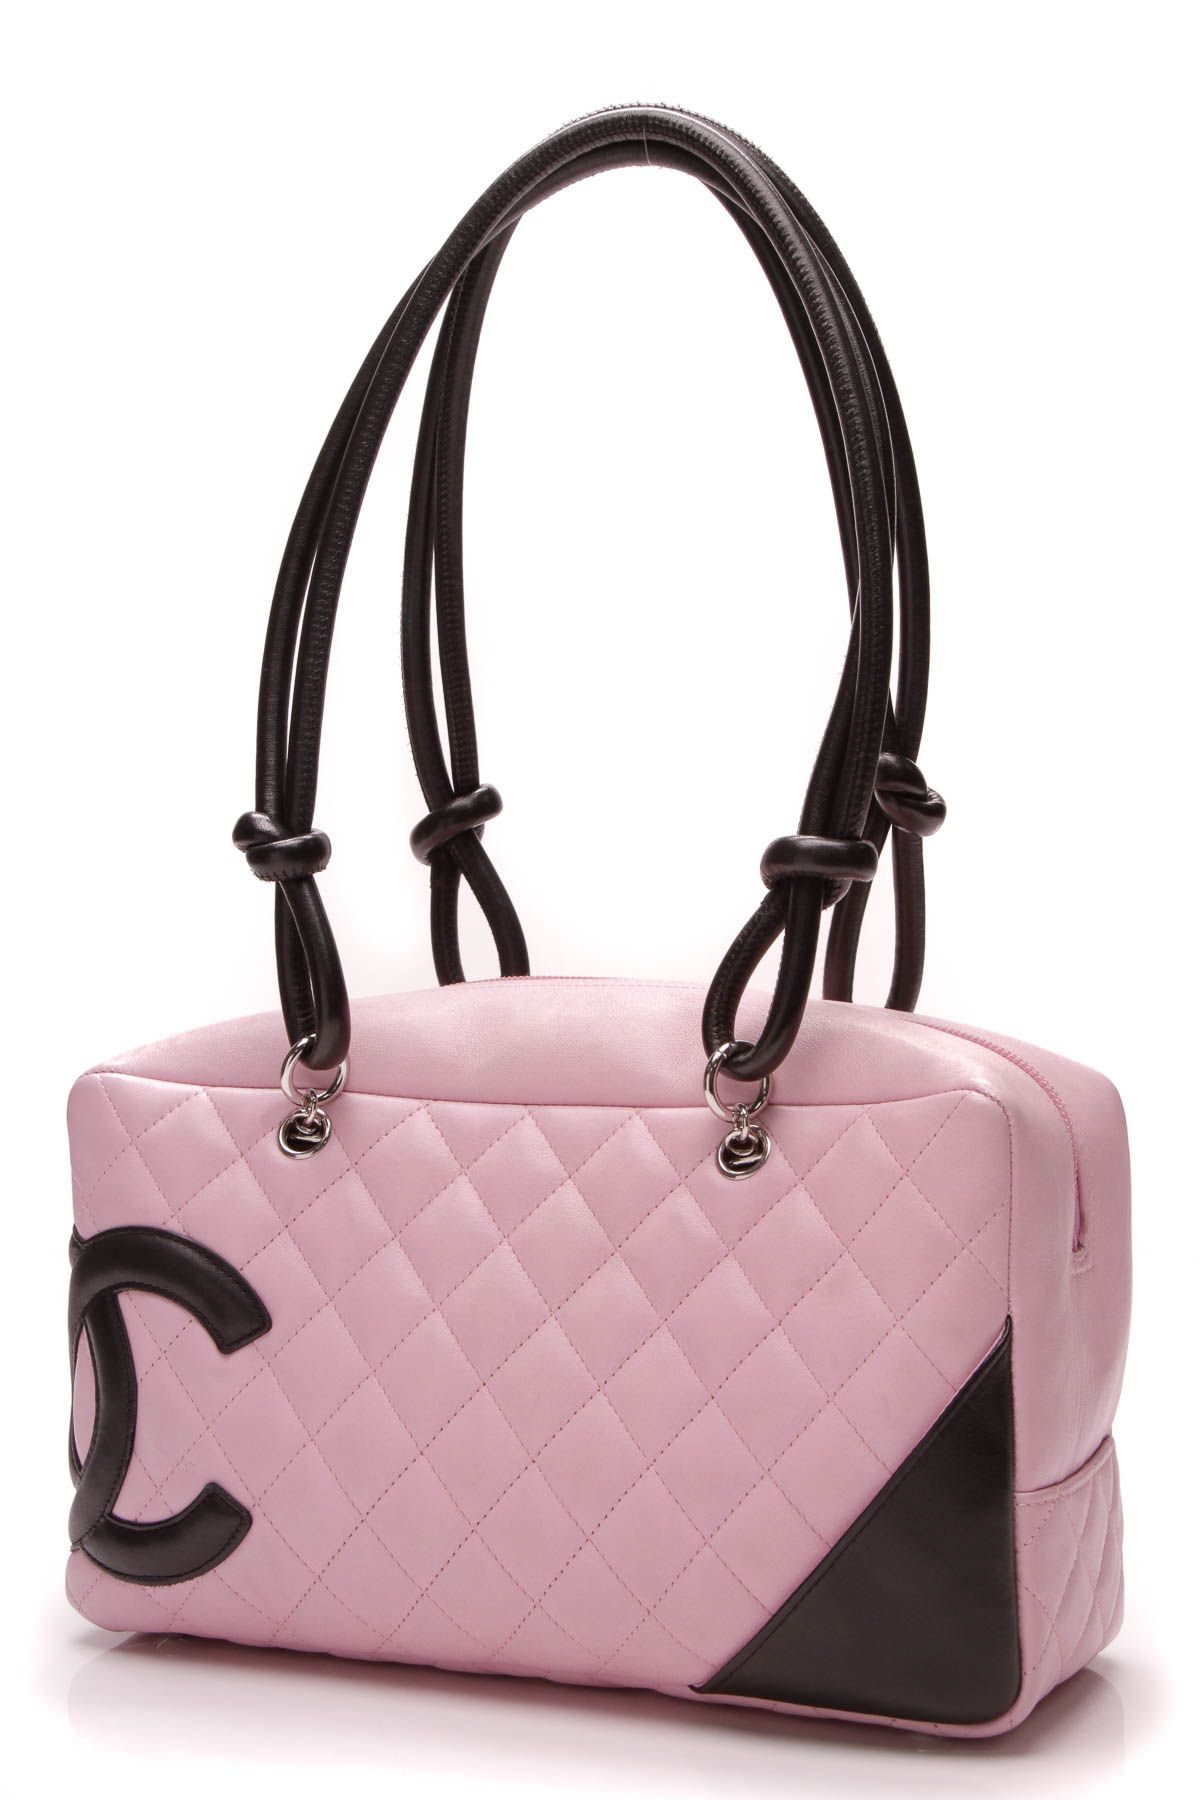 48dd54fd5c79 Cambon Ligne Bowler Tote Bag - Pink in 2019